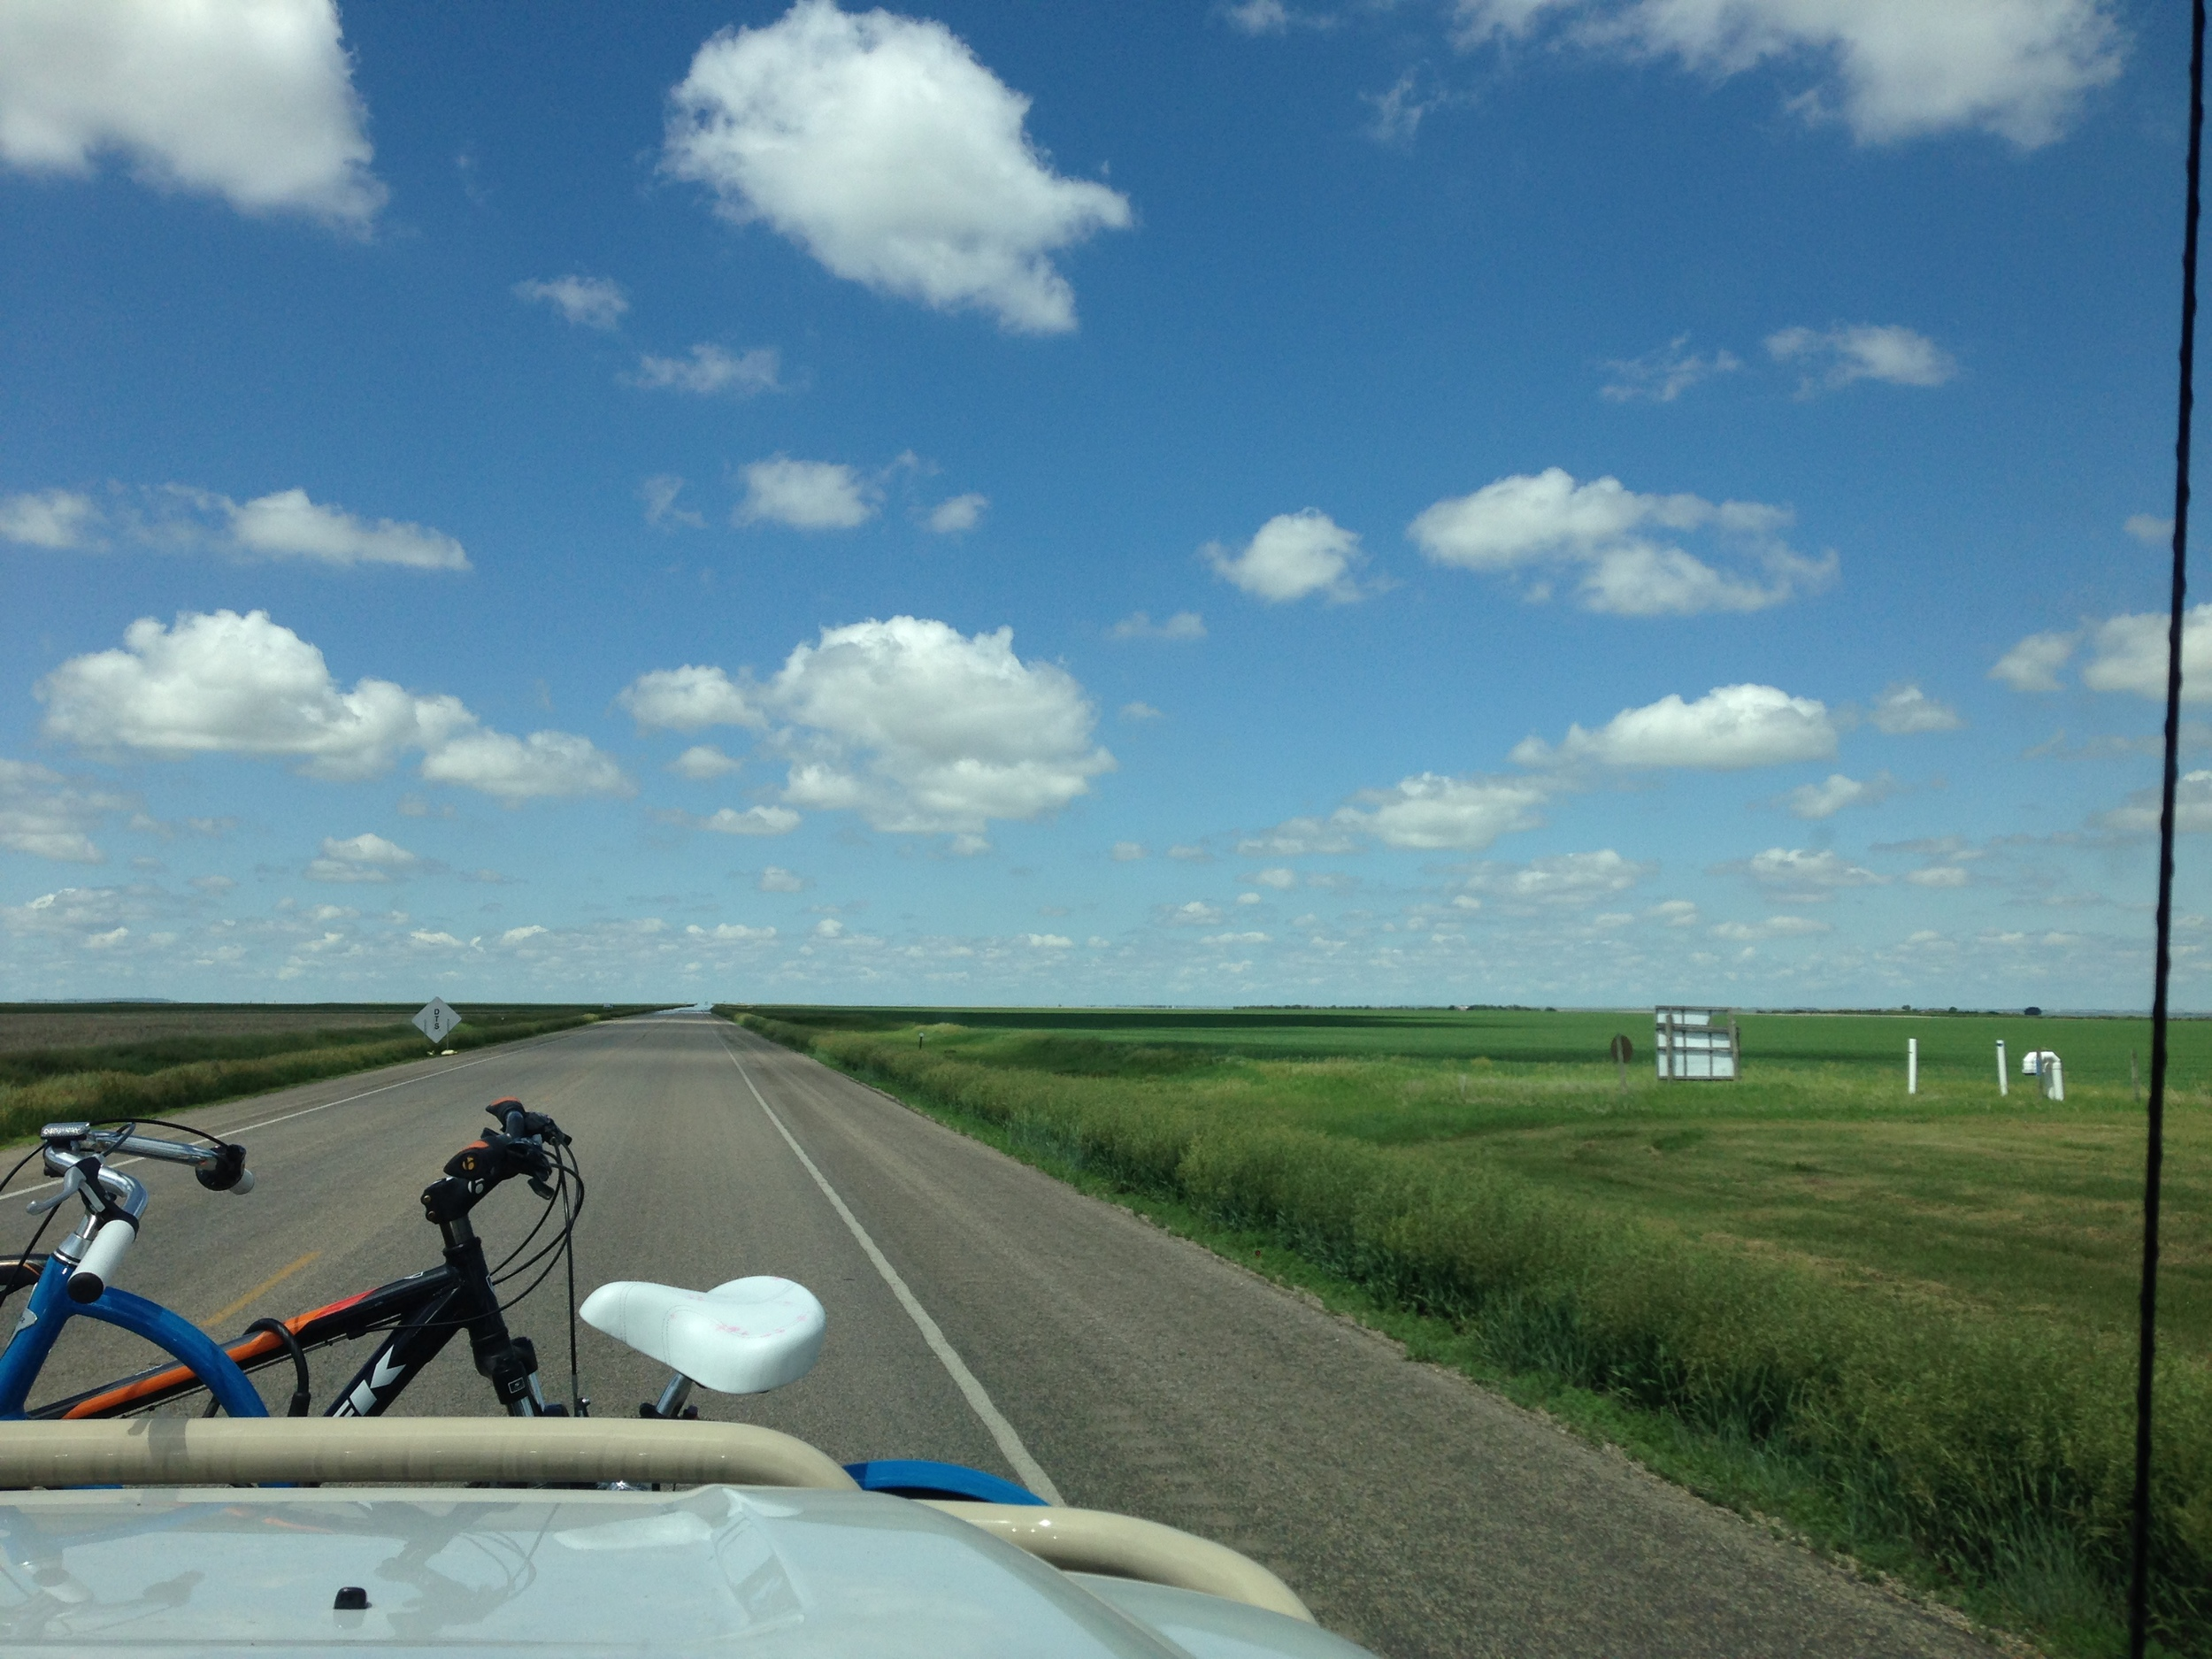 Wide open spaces! The windshield tones out the brilliant blue sky.